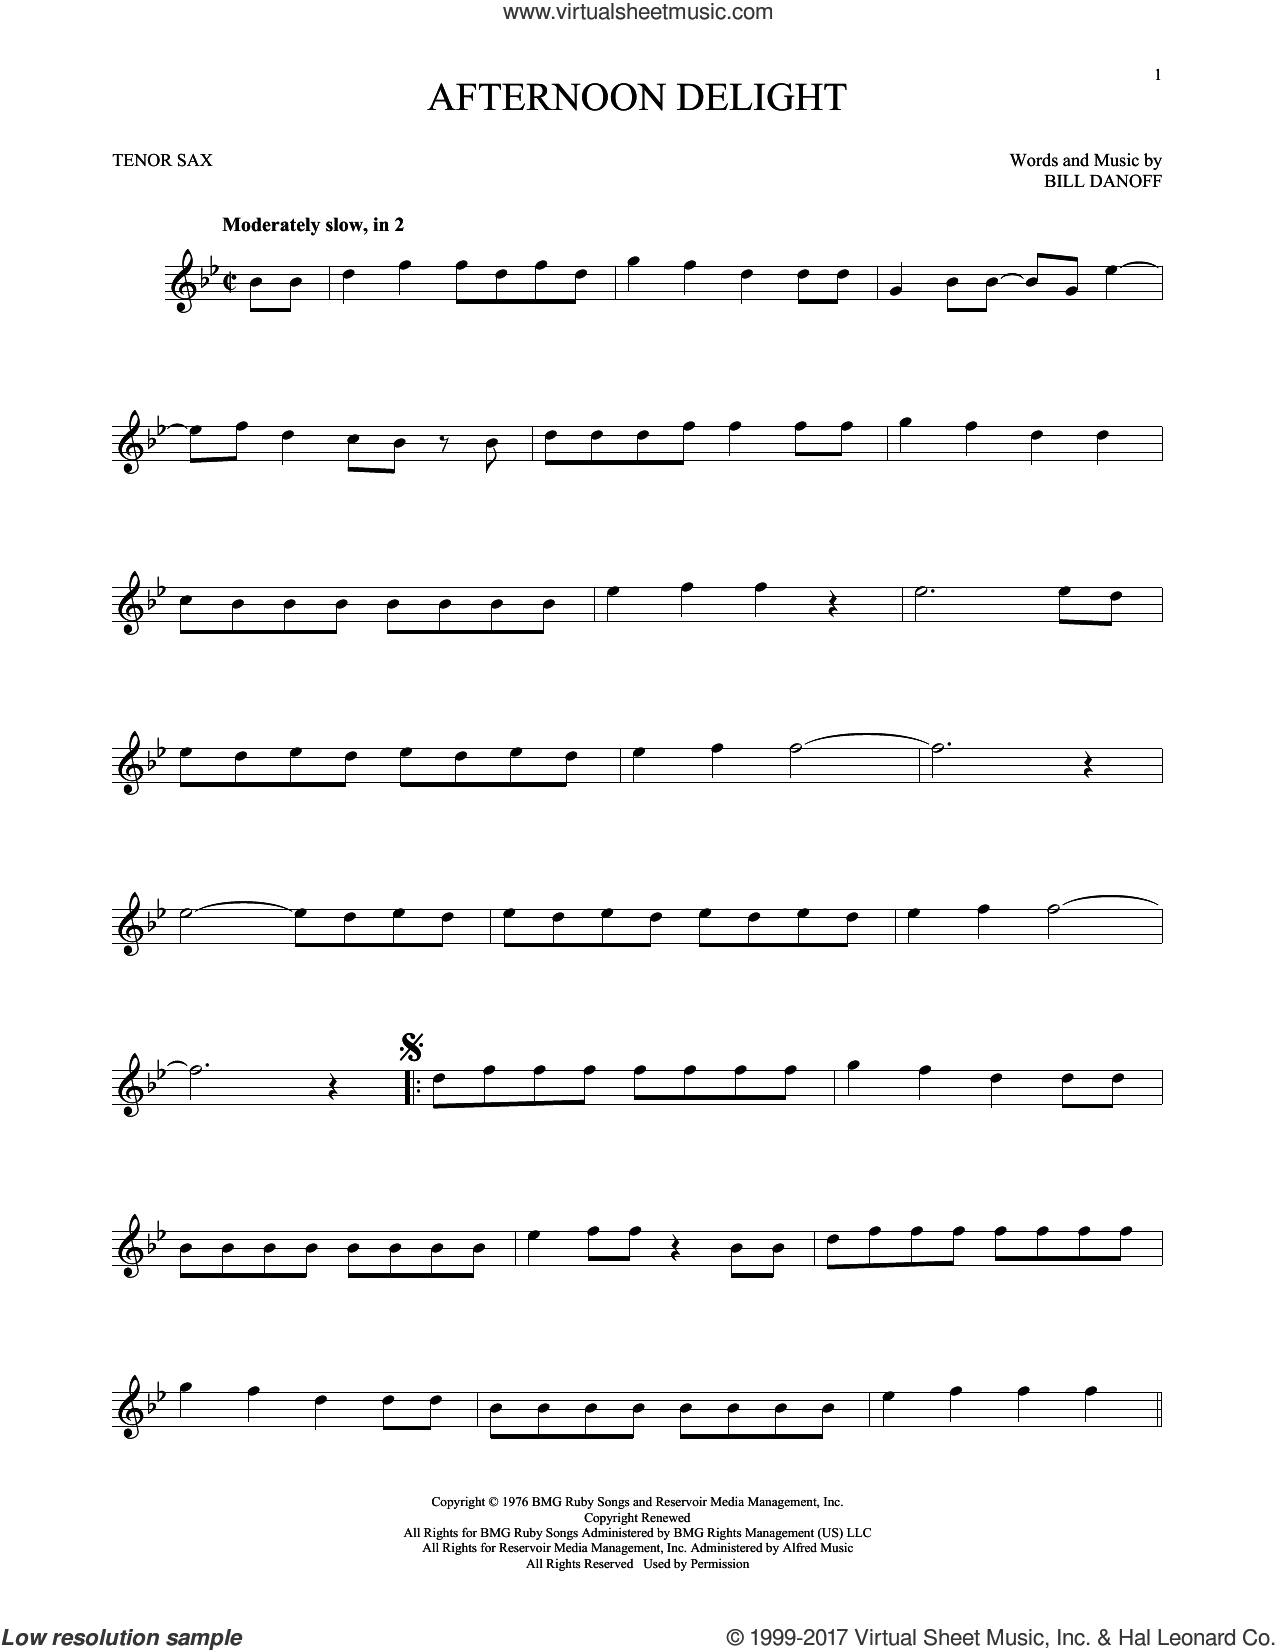 Afternoon Delight sheet music for tenor saxophone solo by Starland Vocal Band and Bill Danoff, intermediate skill level